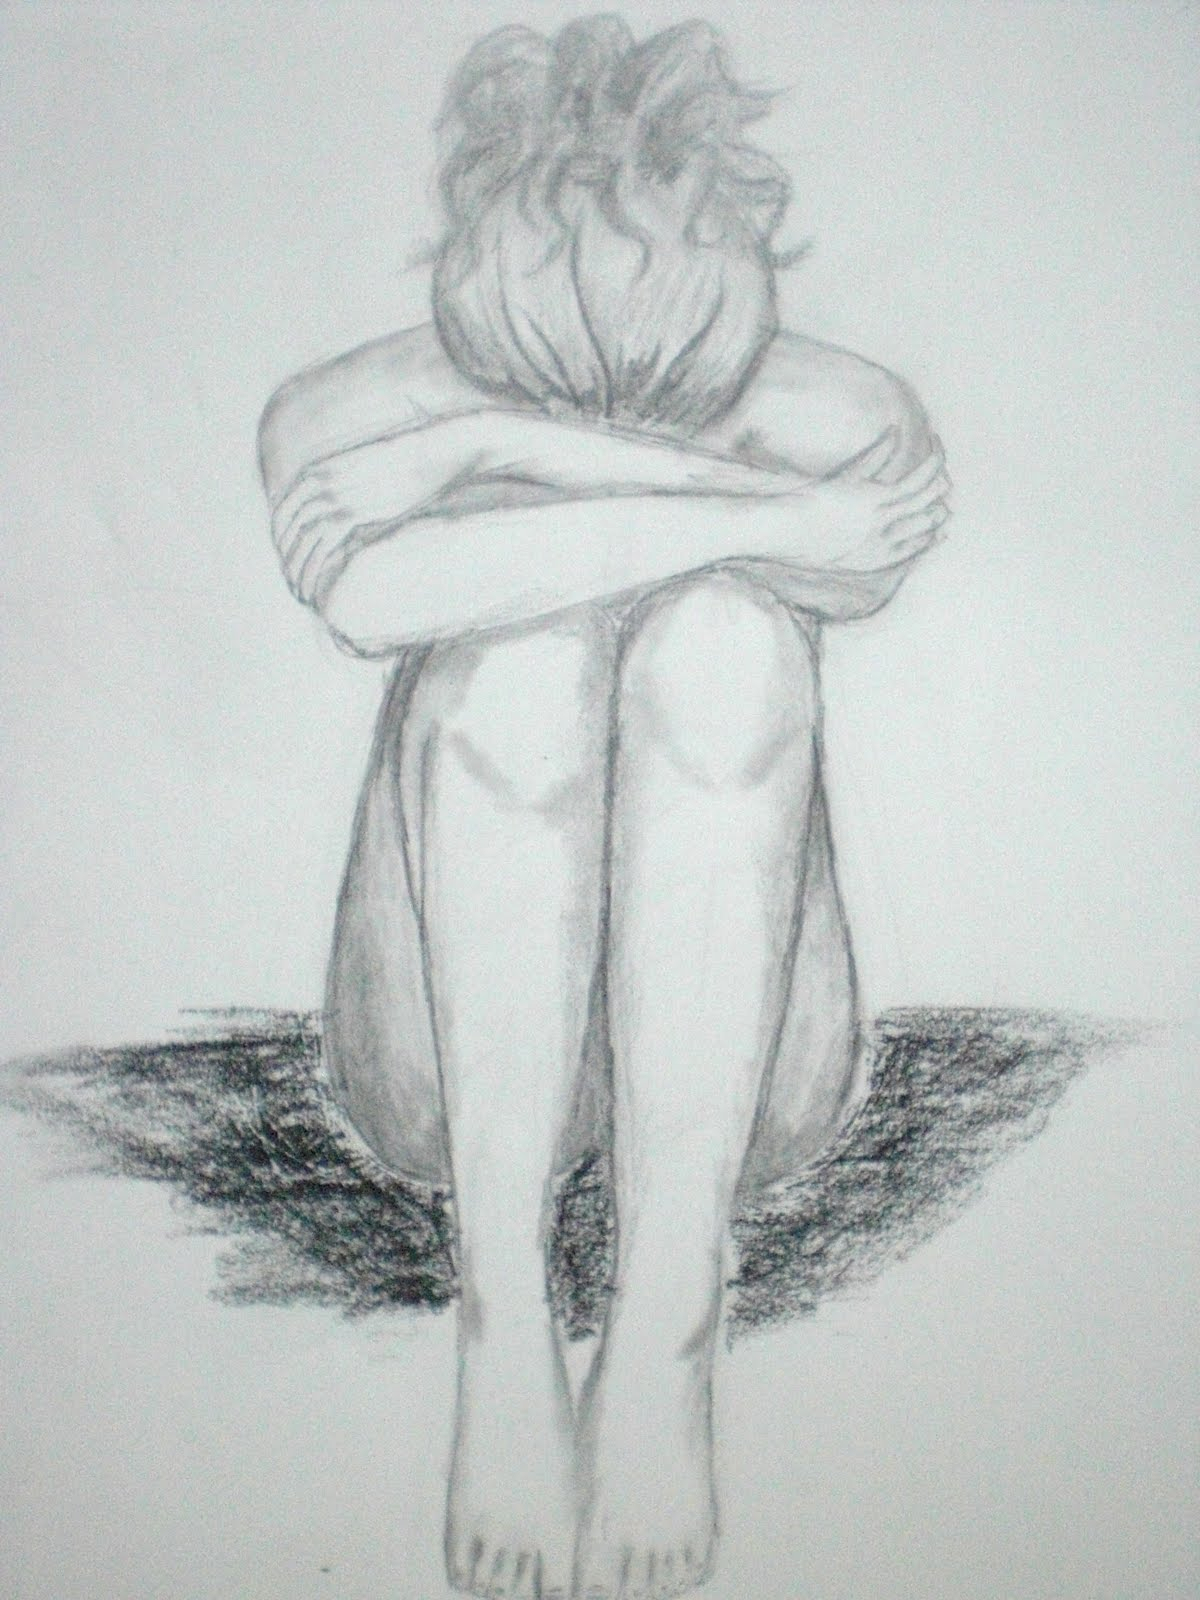 1200x1600 lonely girl images pencil sketch sad girl sketch pic pencil sketch lonely girl sketch